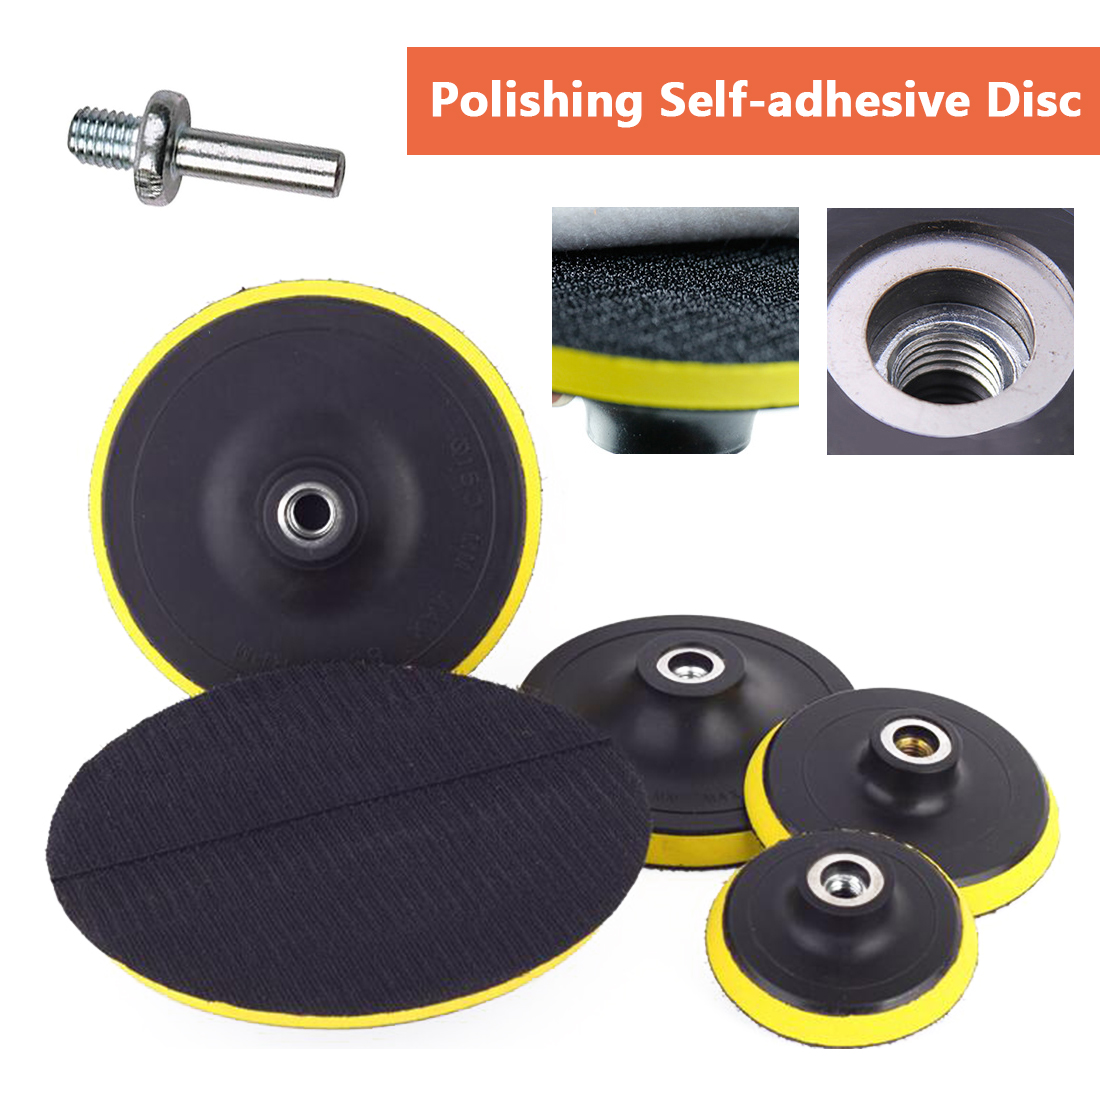 Abrasive Tools 3/4/5/6/7 Self-adhesive Disc & Drill Rod For Car Paint Care Polishing Pad 75mm 100mm 125mm 150mm 180mm To Ensure A Like-New Appearance Indefinably